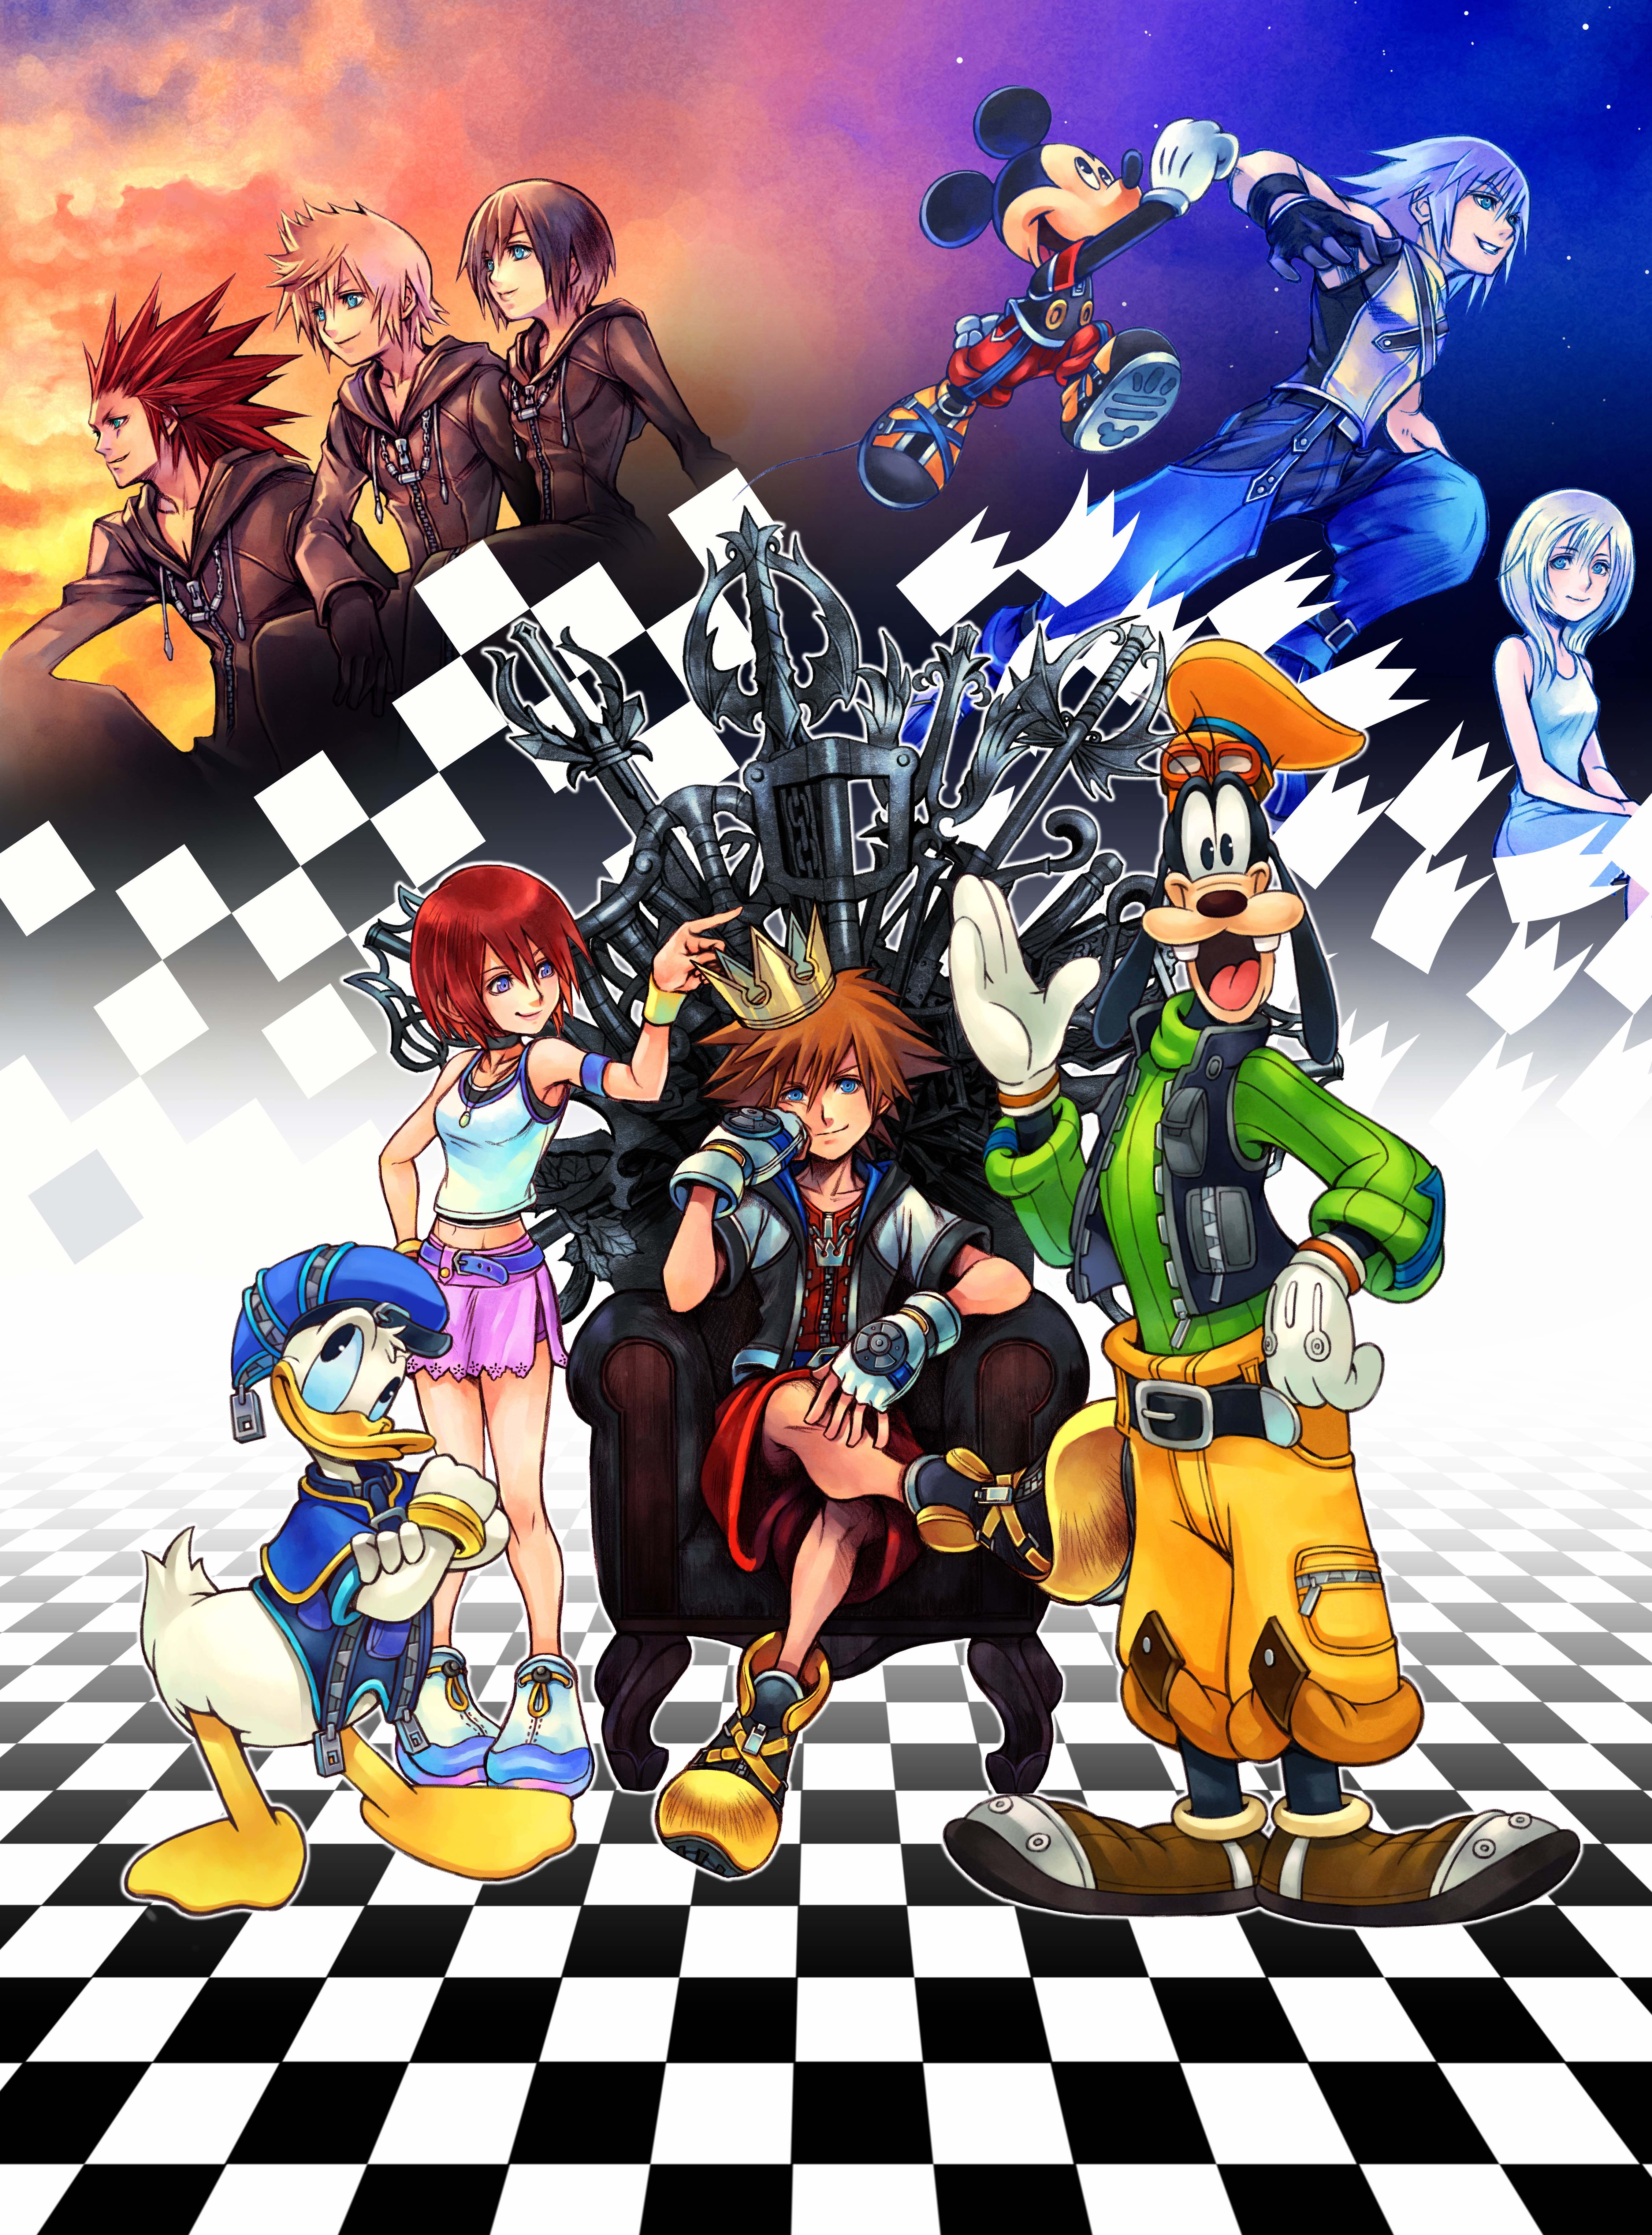 Kingdom Hearts: The Story So Far collects the entire saga on PS4